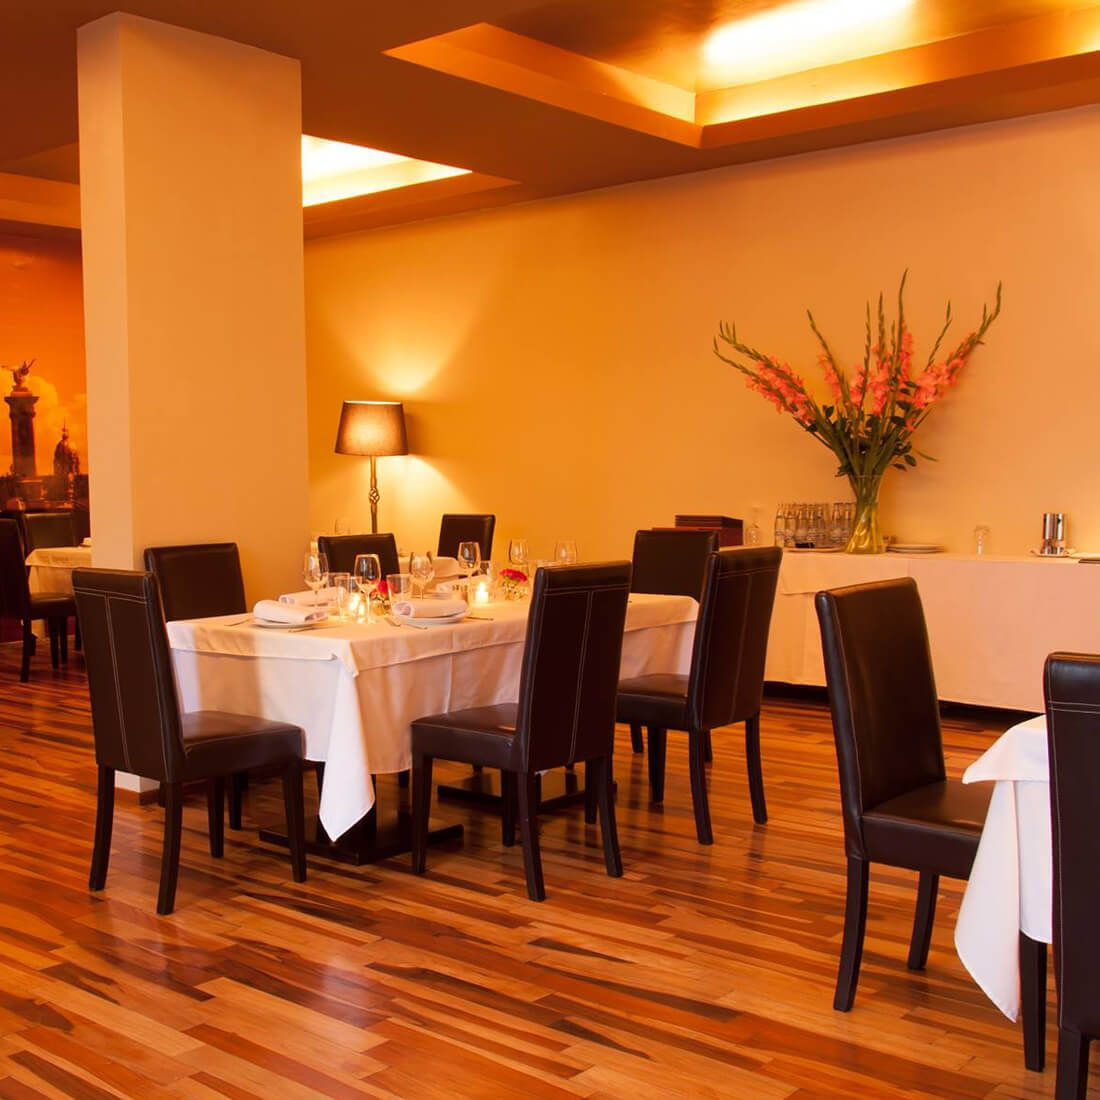 LE SOLEIL CUSCO Restaurant - and Peruvian Food FRENCH - CUSCO - MESA 24/7 Guide | CUSCO - Peru